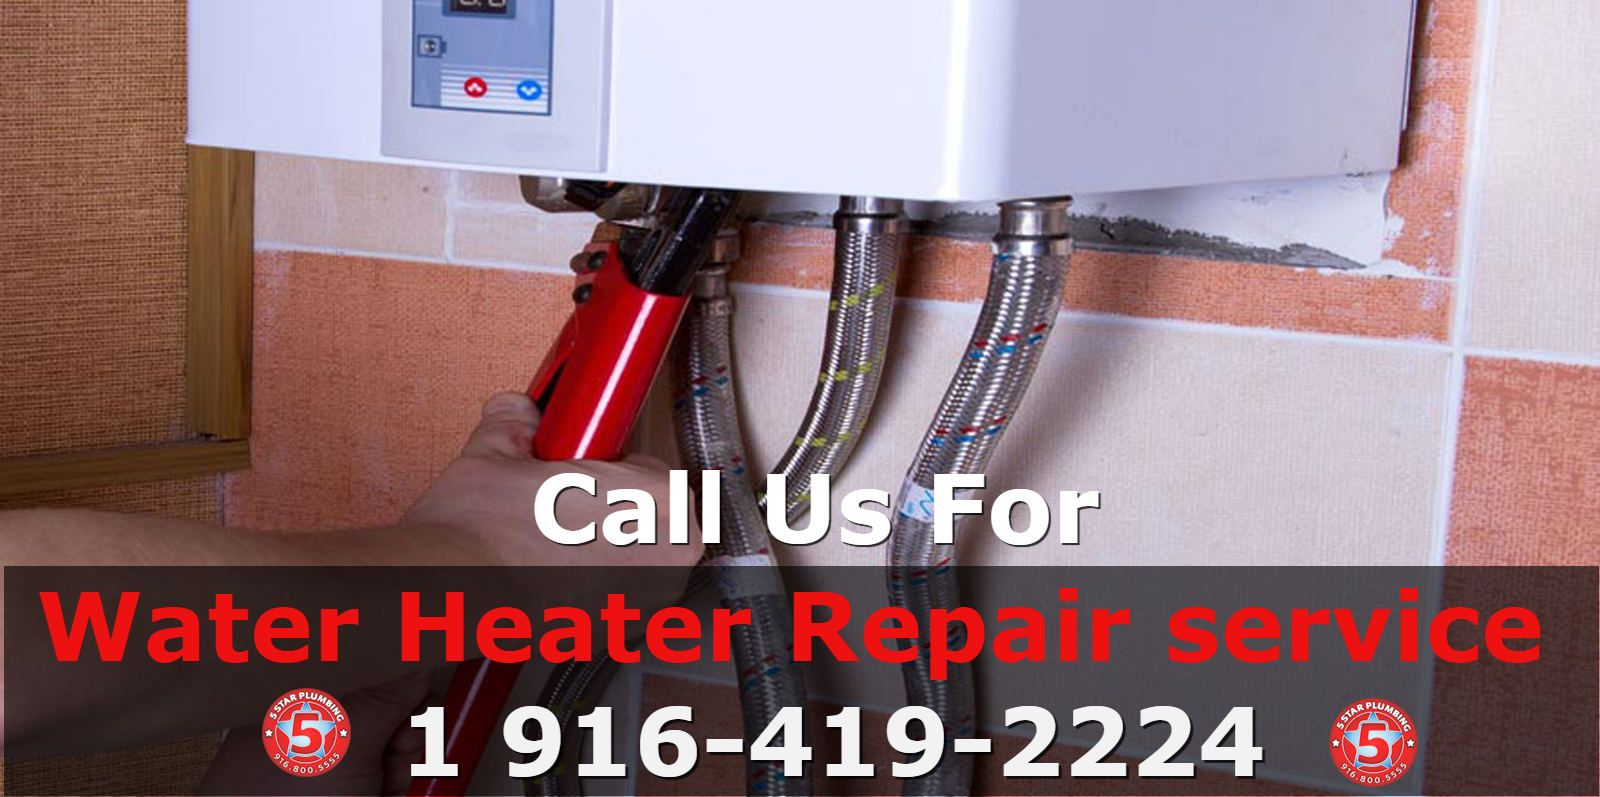 Your water heater is dead when the tank leaks. The